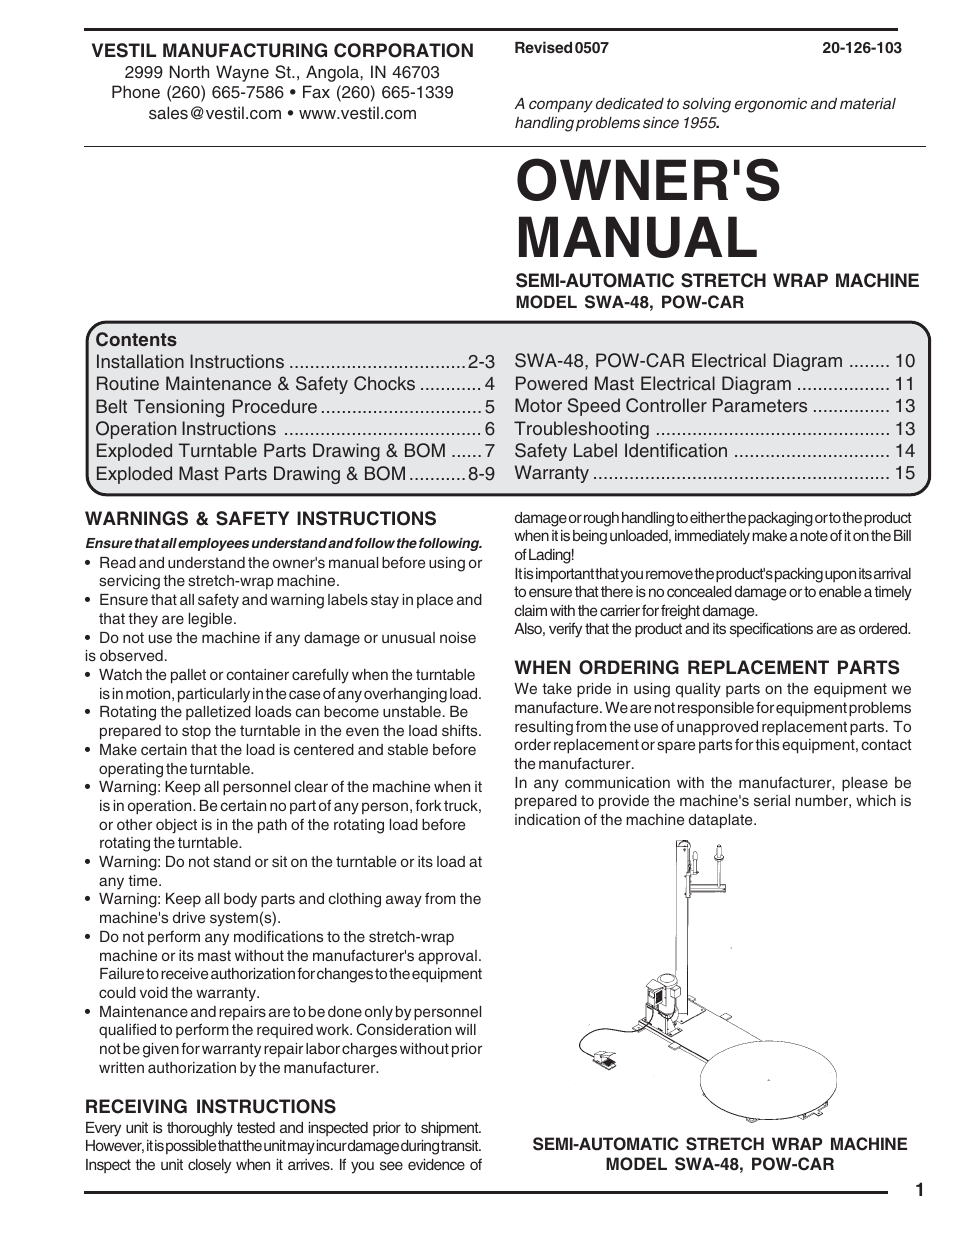 Vestil SWA-48 User Manual | 16 pages | Also for: POW-CAR